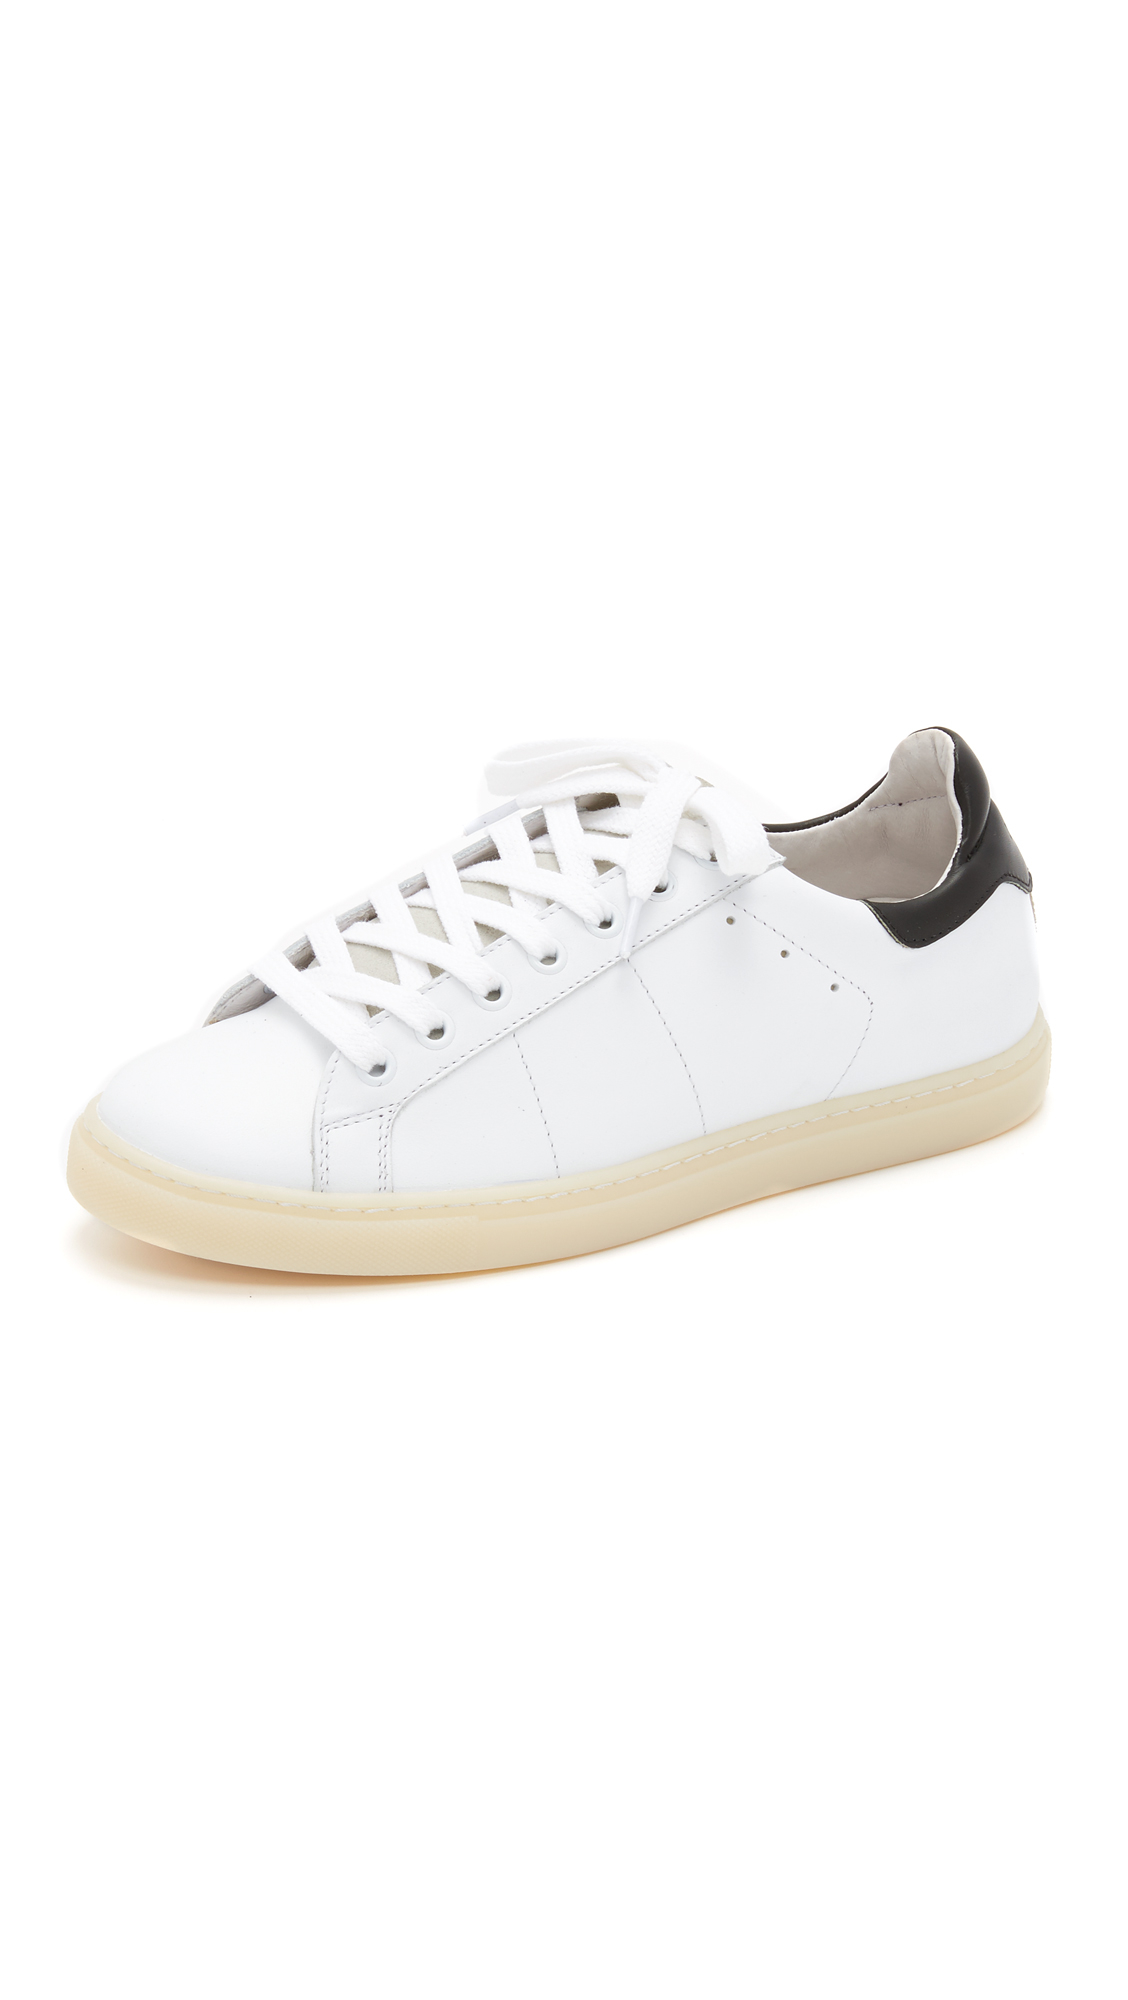 From China Low Shipping Fee Iro Jeans Prissy Leather Sneaker(Women's) -White/Red Fast Express Sunshine Discount Fashion Style CGKQ6RdxA